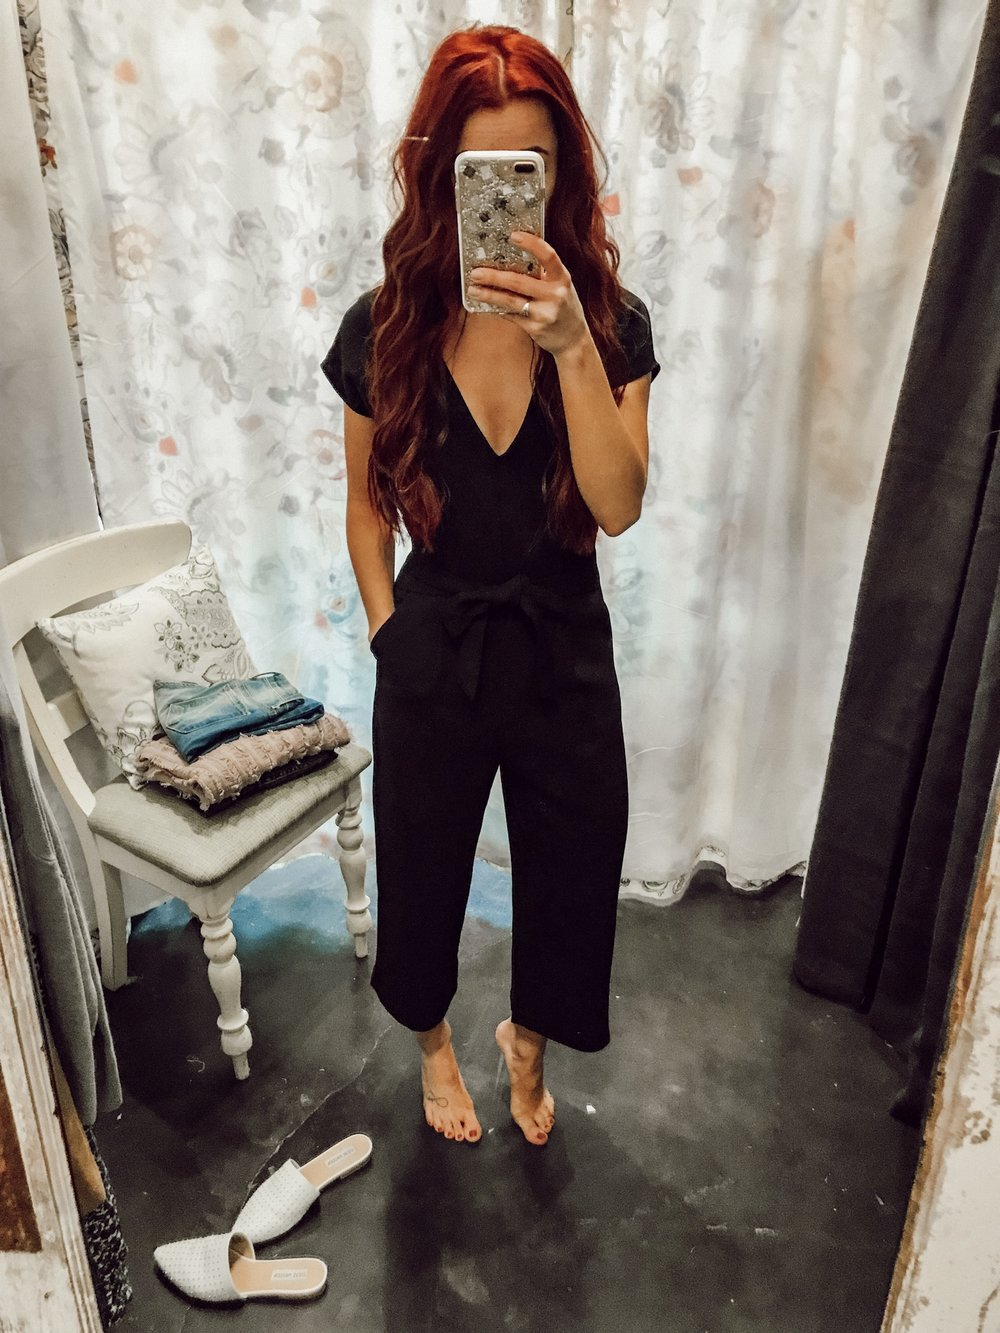 - Everyone needs a solid black jumpsuit. I loved this one because the crop pant is on trend for this one and works well for my height. You can shop it in store or call them for availability. The fit is seriously amazing.